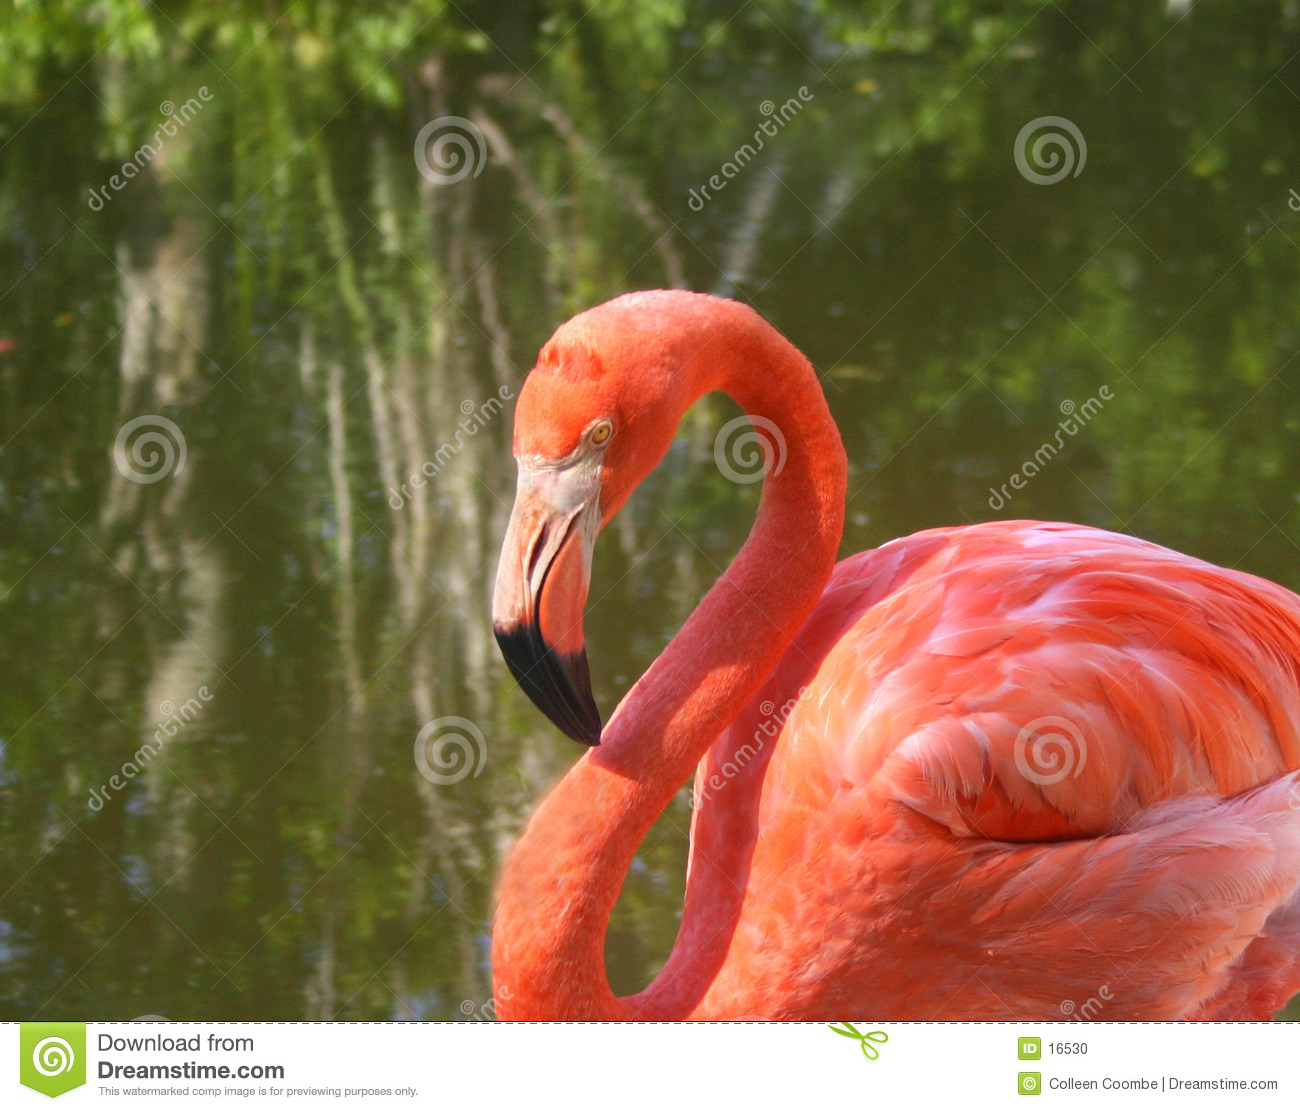 De Close-up van de flamingo